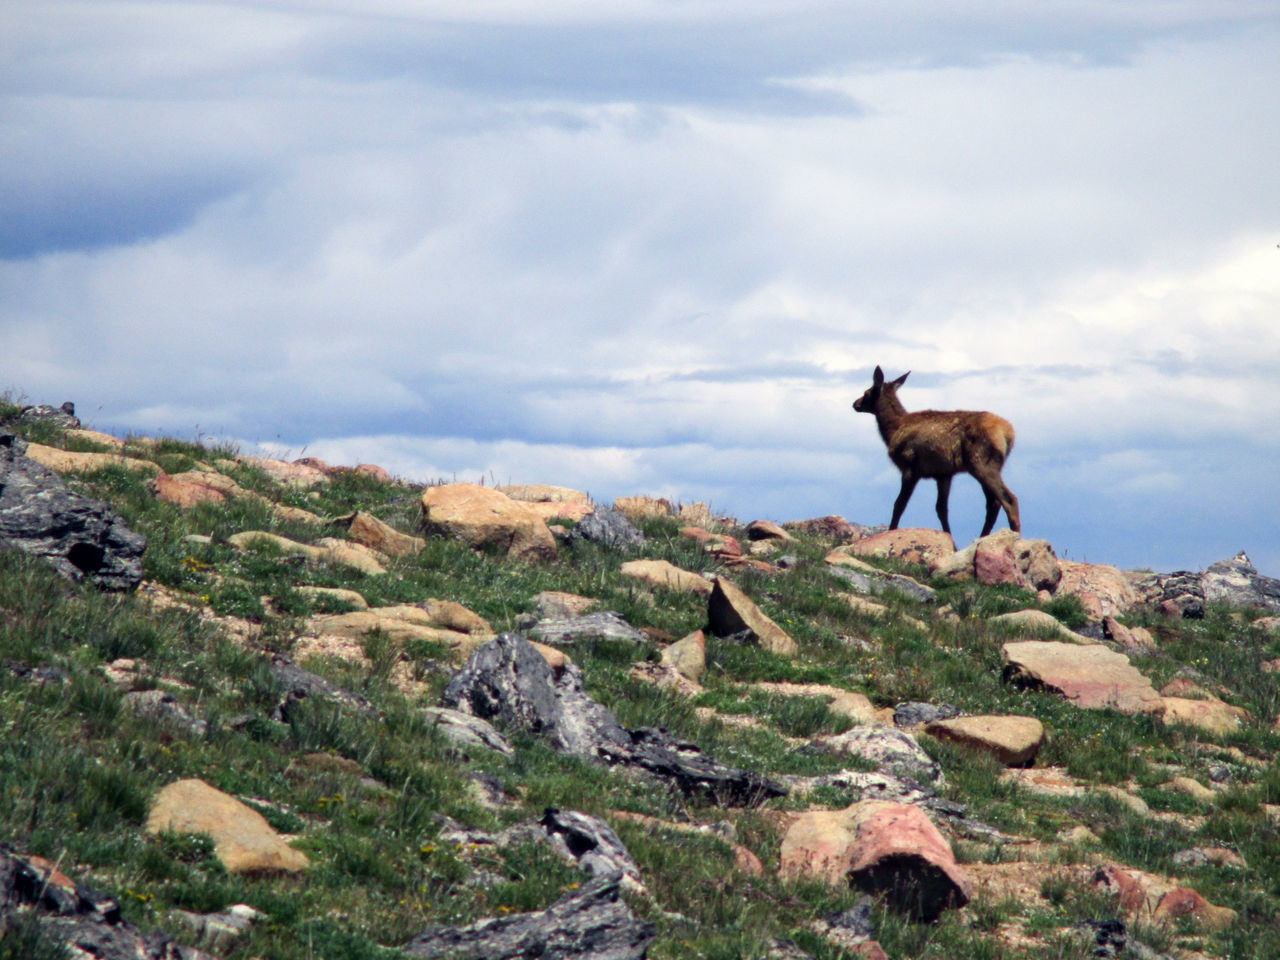 Animal Themes Beauty In Nature Cloud - Sky Colorado Day Elk Eye4nature Eye4photography  Landscape Mammal Mountain Nature Nature_collection No People One Animal Outdoors Rock Rocky Rocky Mountain National Park Scenics Sky The Great Outdoors With Adobe